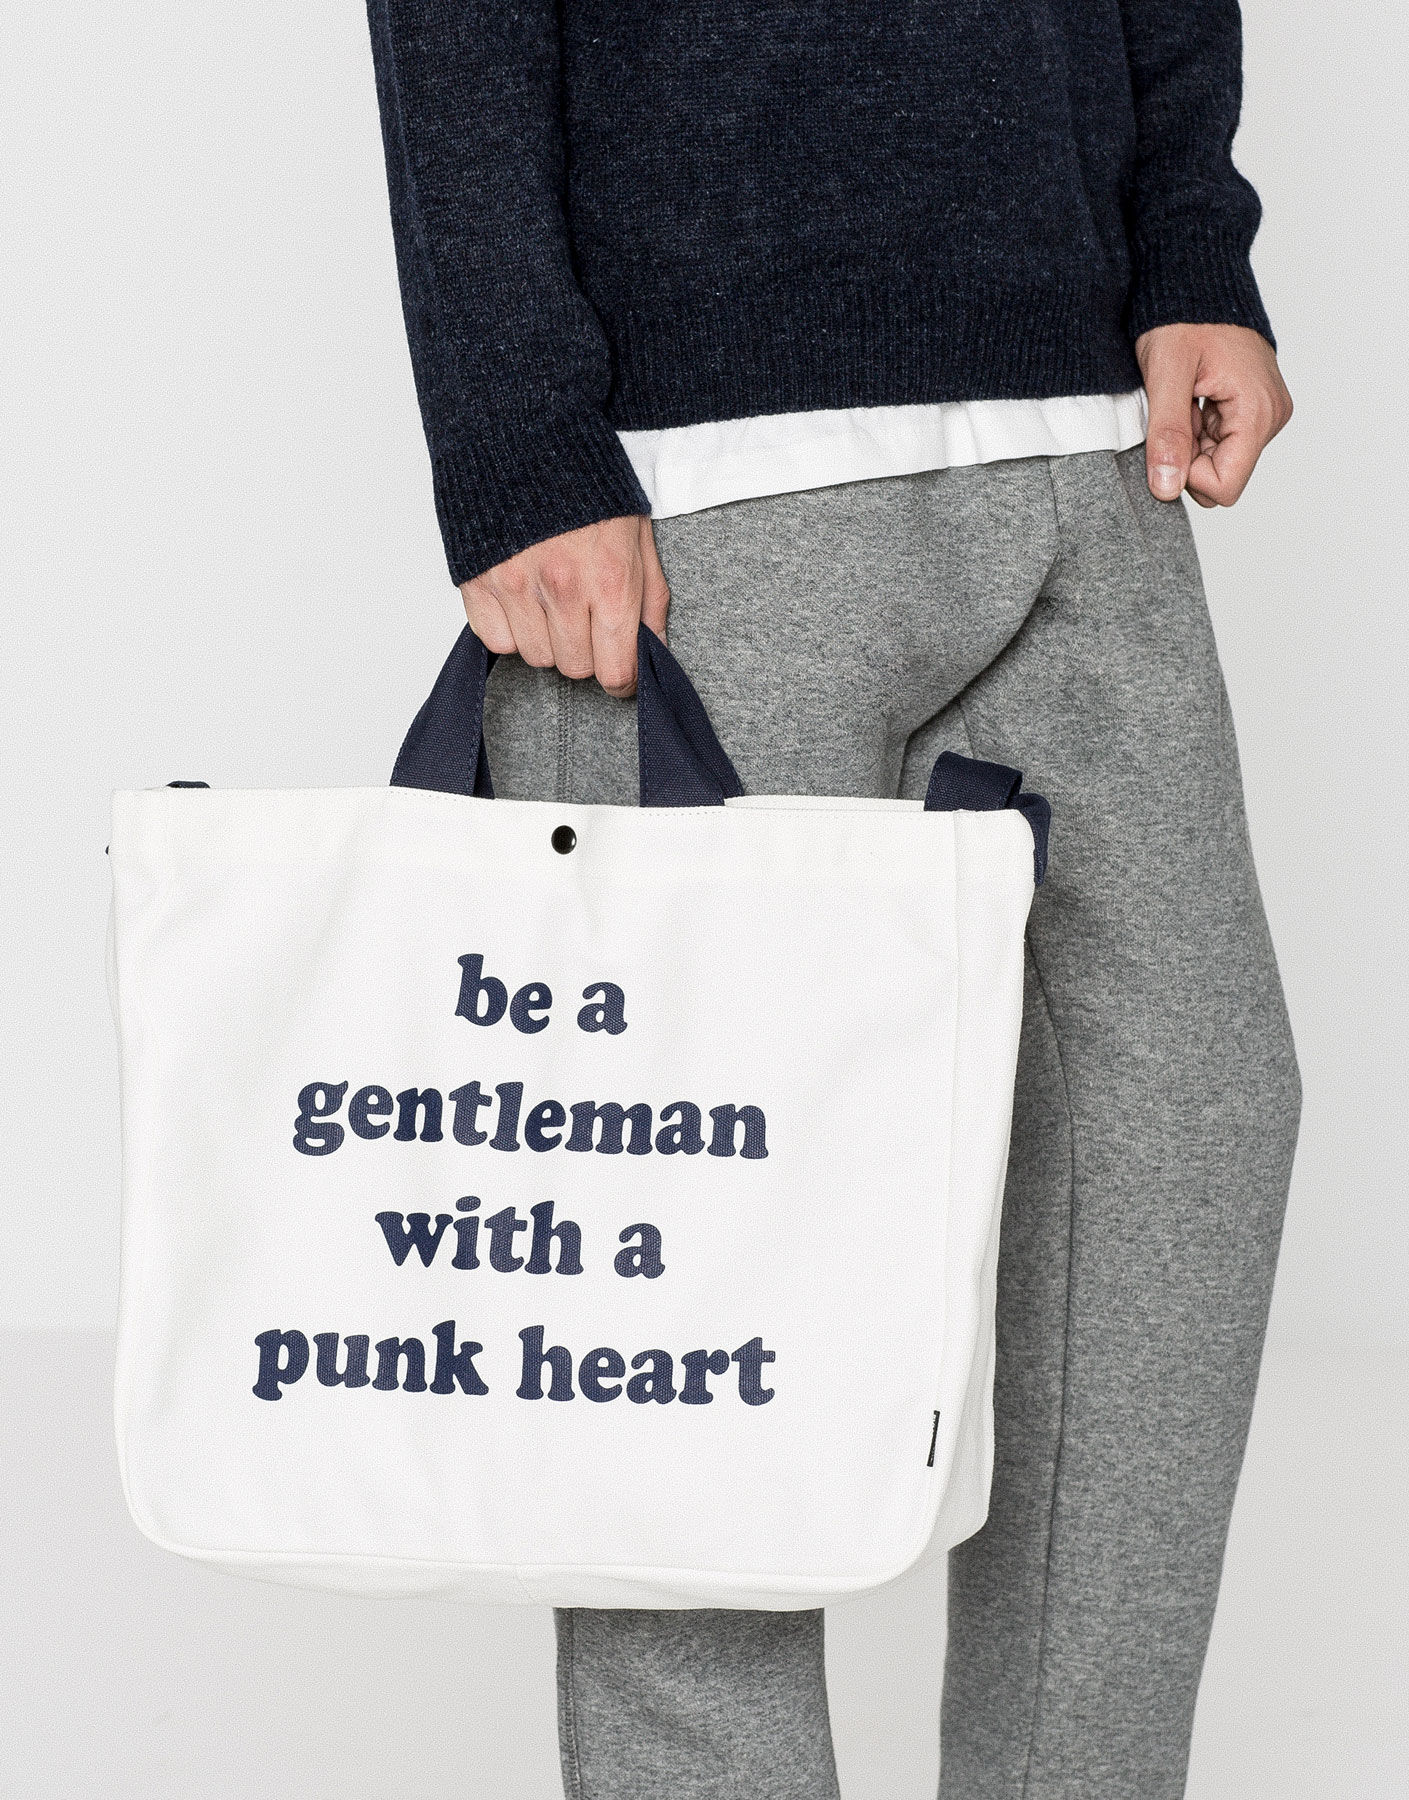 Punk heart tote bag